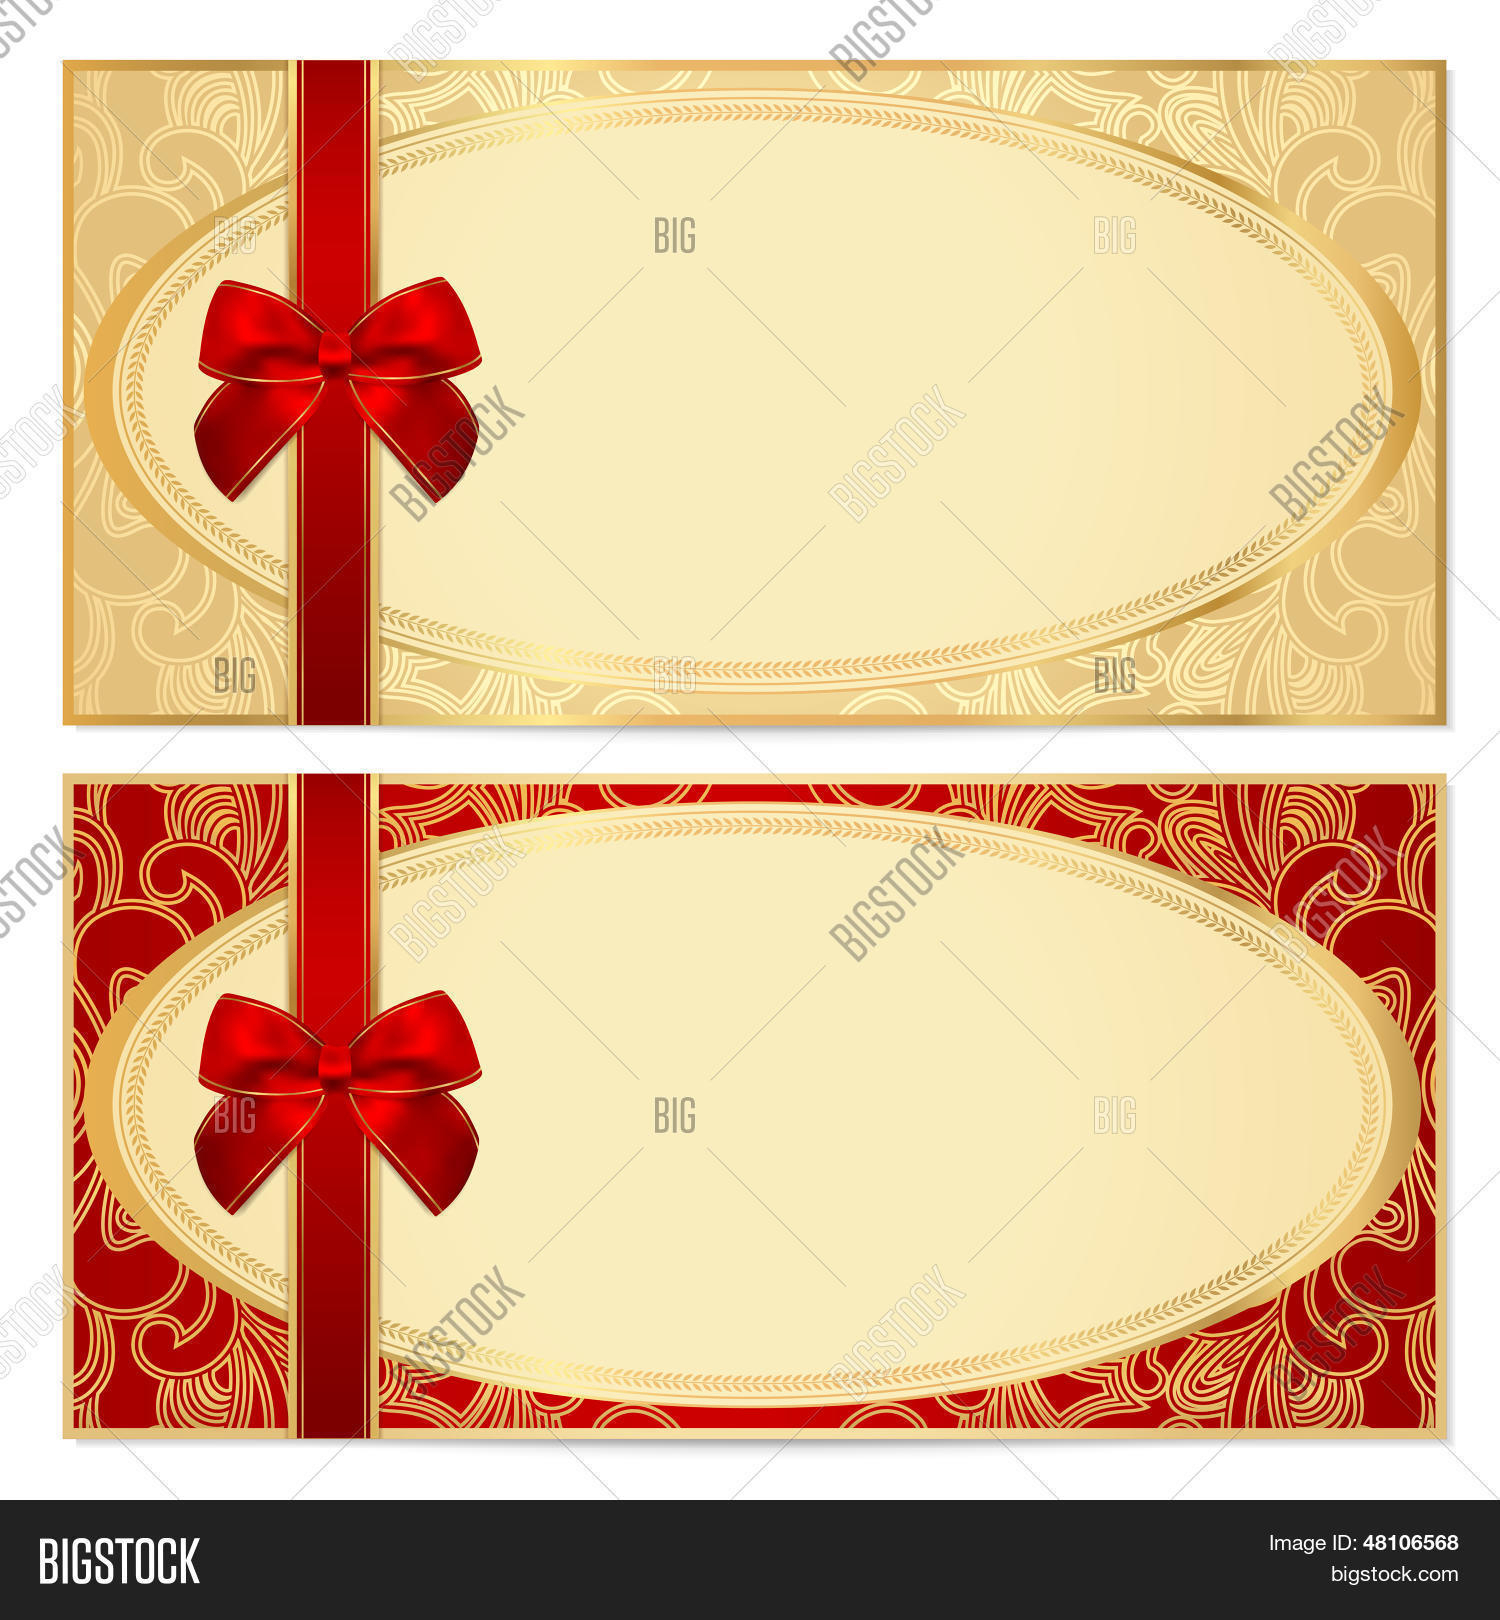 Discount Voucher Free Psd Template | Psdfreebies Templates - Free Printable Photography Gift Certificate Template